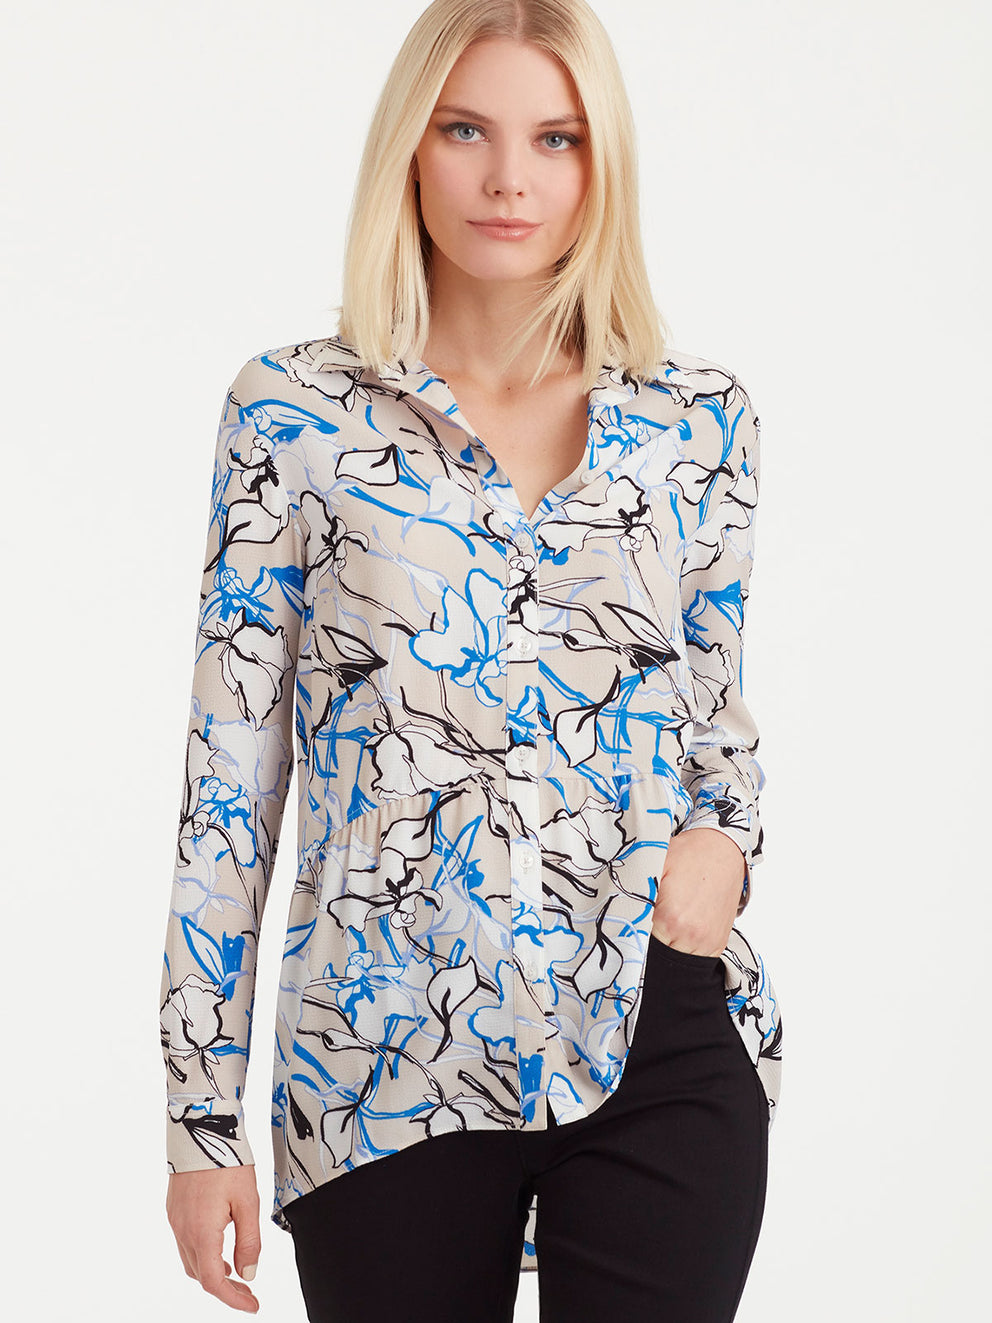 The Jones New York Button-Down Peplum Top in color Sapphire Floral - Image Position 1